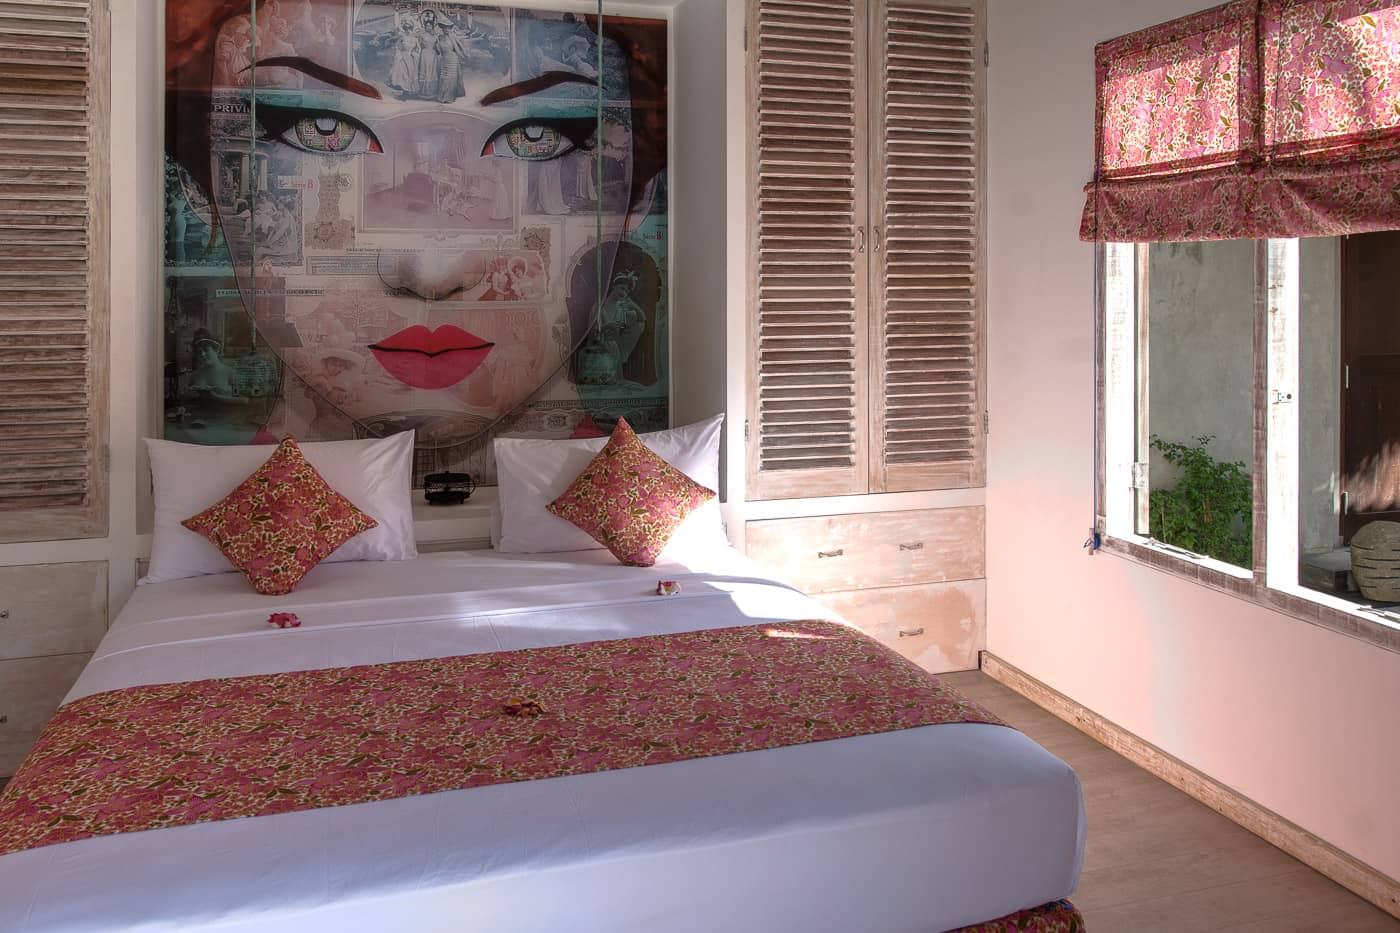 interior guest bedroom #2 image of Joglo House Lombok